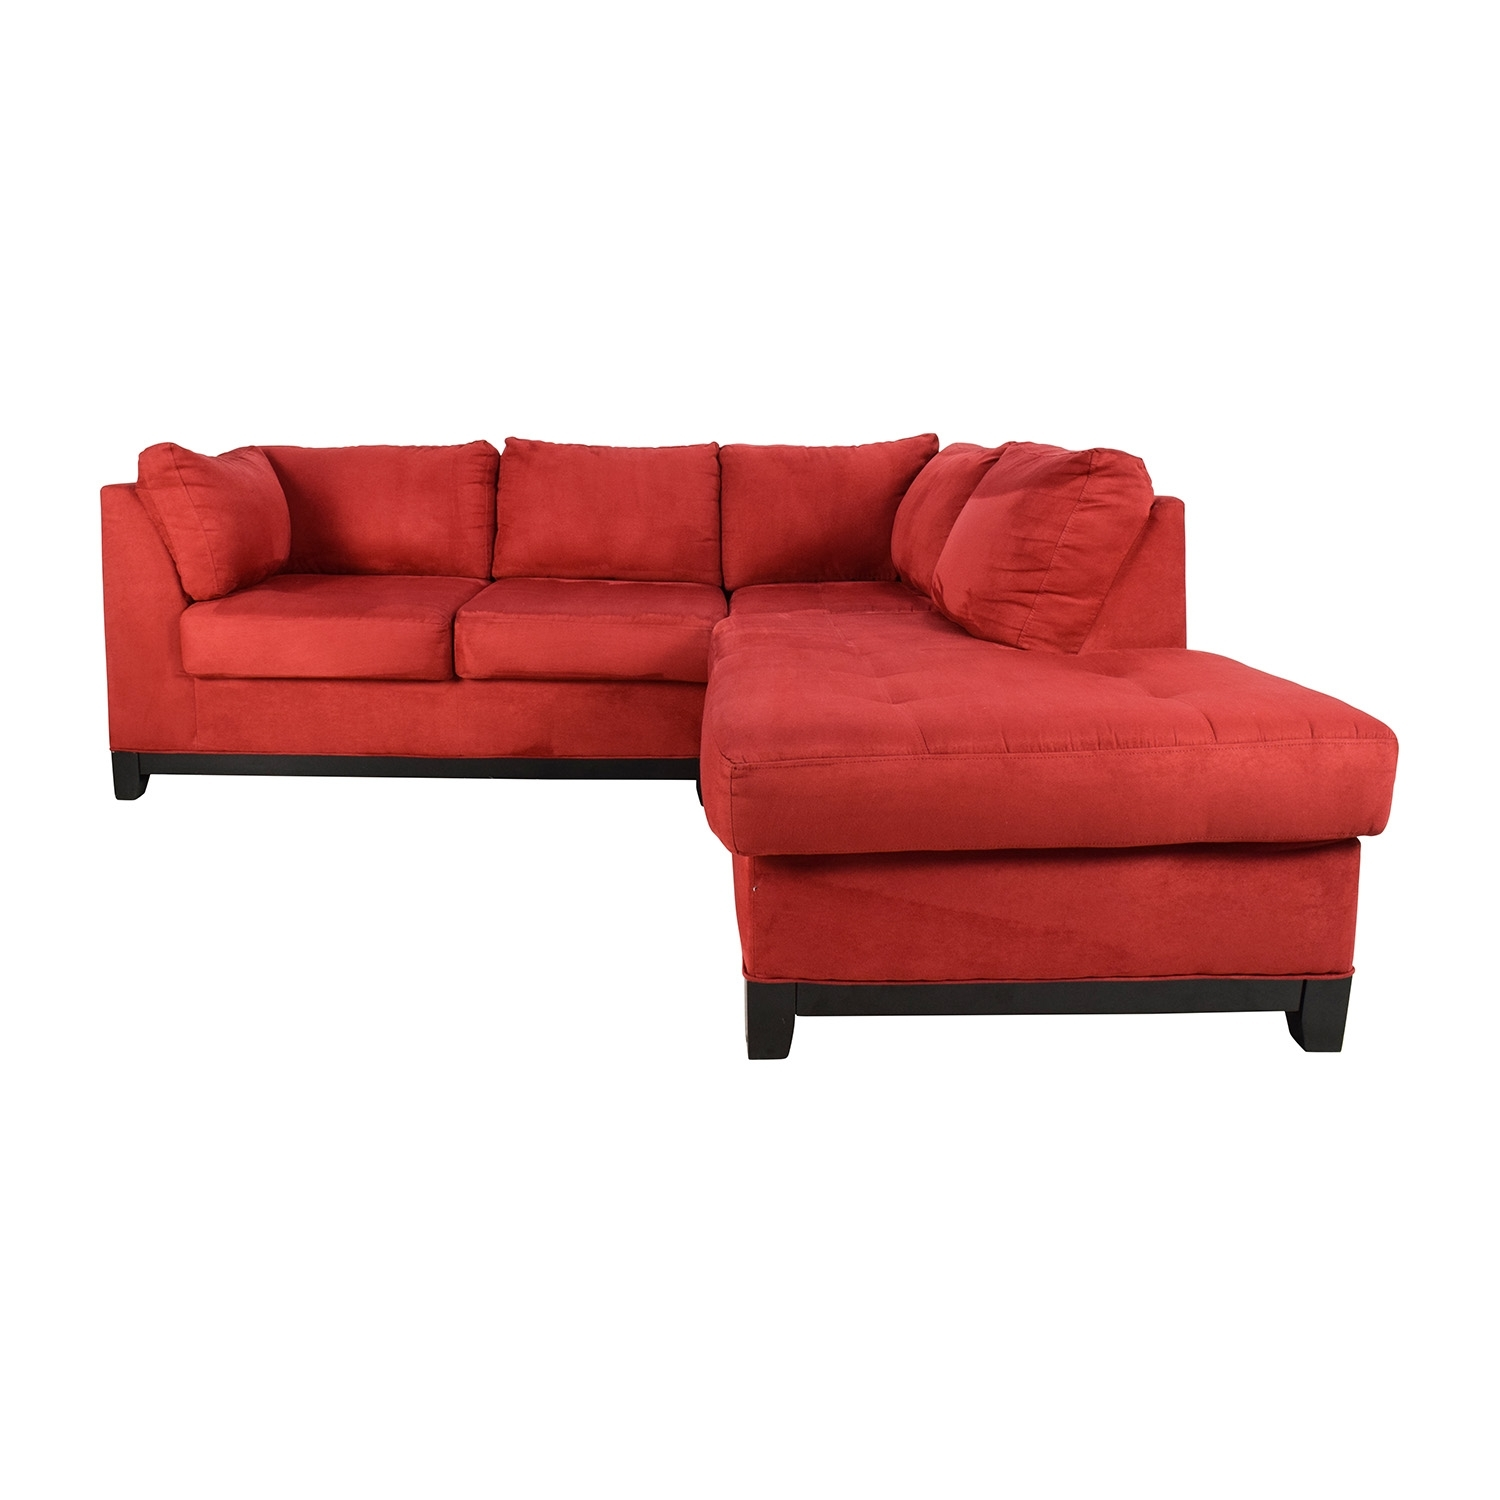 67% Off - Raymour And Flanigan Raymour & Flanigan Zella Red throughout Sectional Sofas at Raymour and Flanigan (Image 3 of 15)